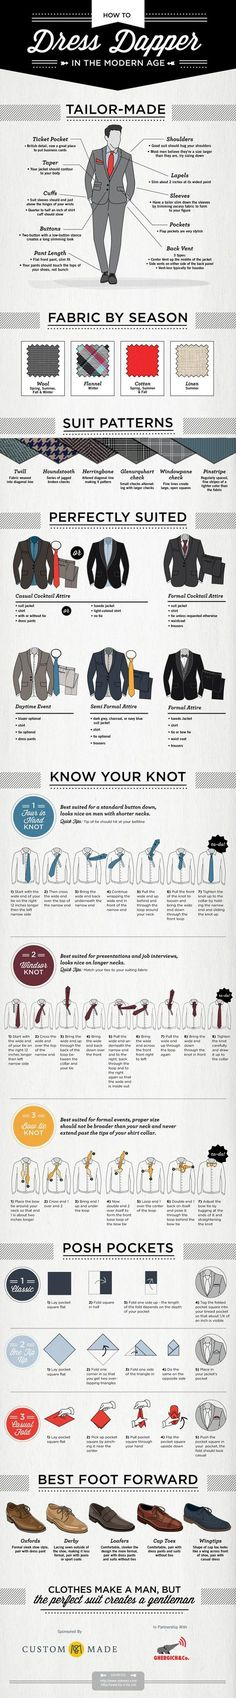 How to Dress Dapper in the Modern Age - Guys here is another fabulous and comprehensive men's fashion guide on how to dress dapper in the modern age. It's a men's suit guide covering fabrics, patterns, ties, pocket squares and shoes. Choose the elevator shoes from Topoutshoes